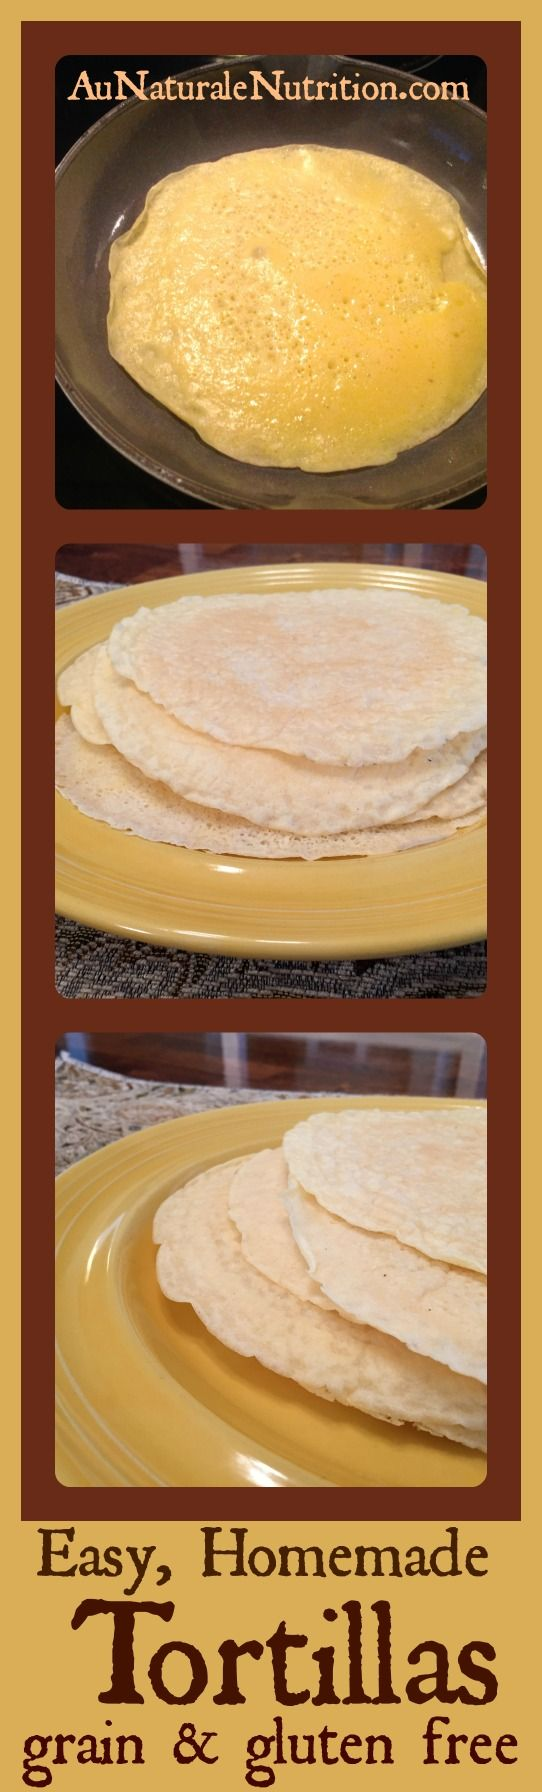 Easy, Homemade Tortillas. (Paleo, gluten & grain-free!) Great for Mexican nite or breakfast burritos. by www.aunaturalenutrition.com Make in Thermie